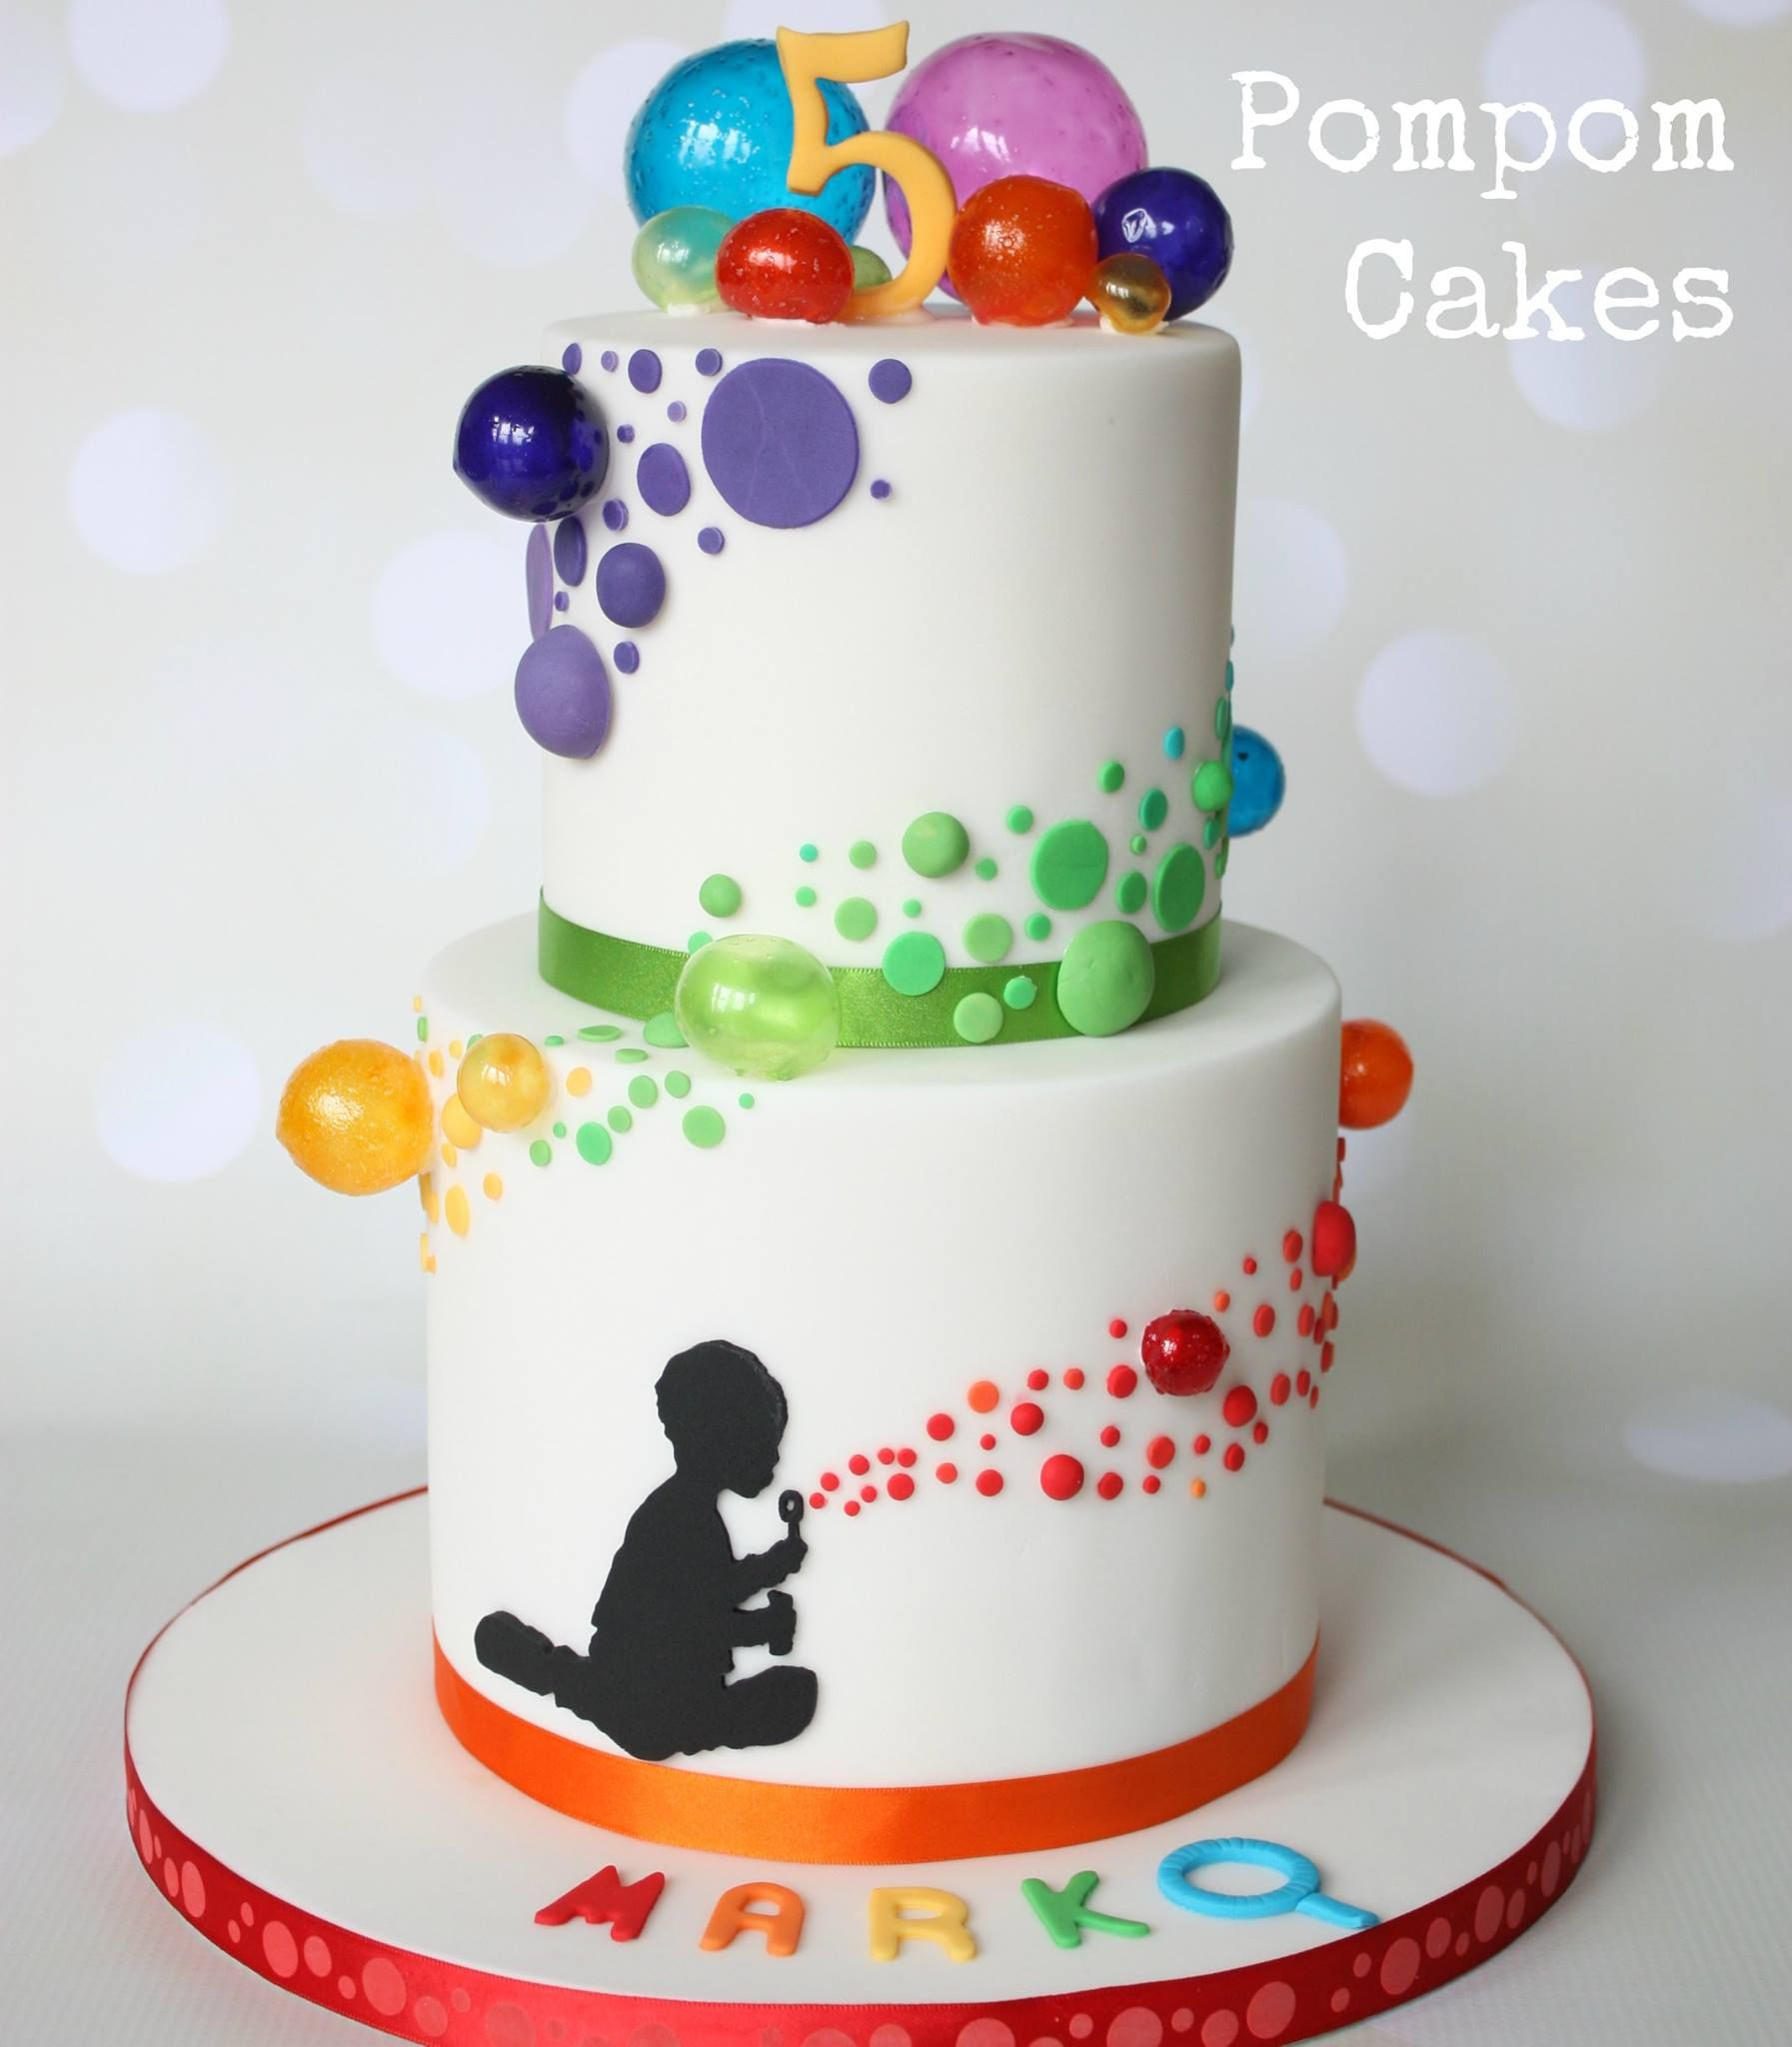 Fabulous Prototype Design Image From The Web For A Bubble Themed Cake Personalised Birthday Cards Paralily Jamesorg